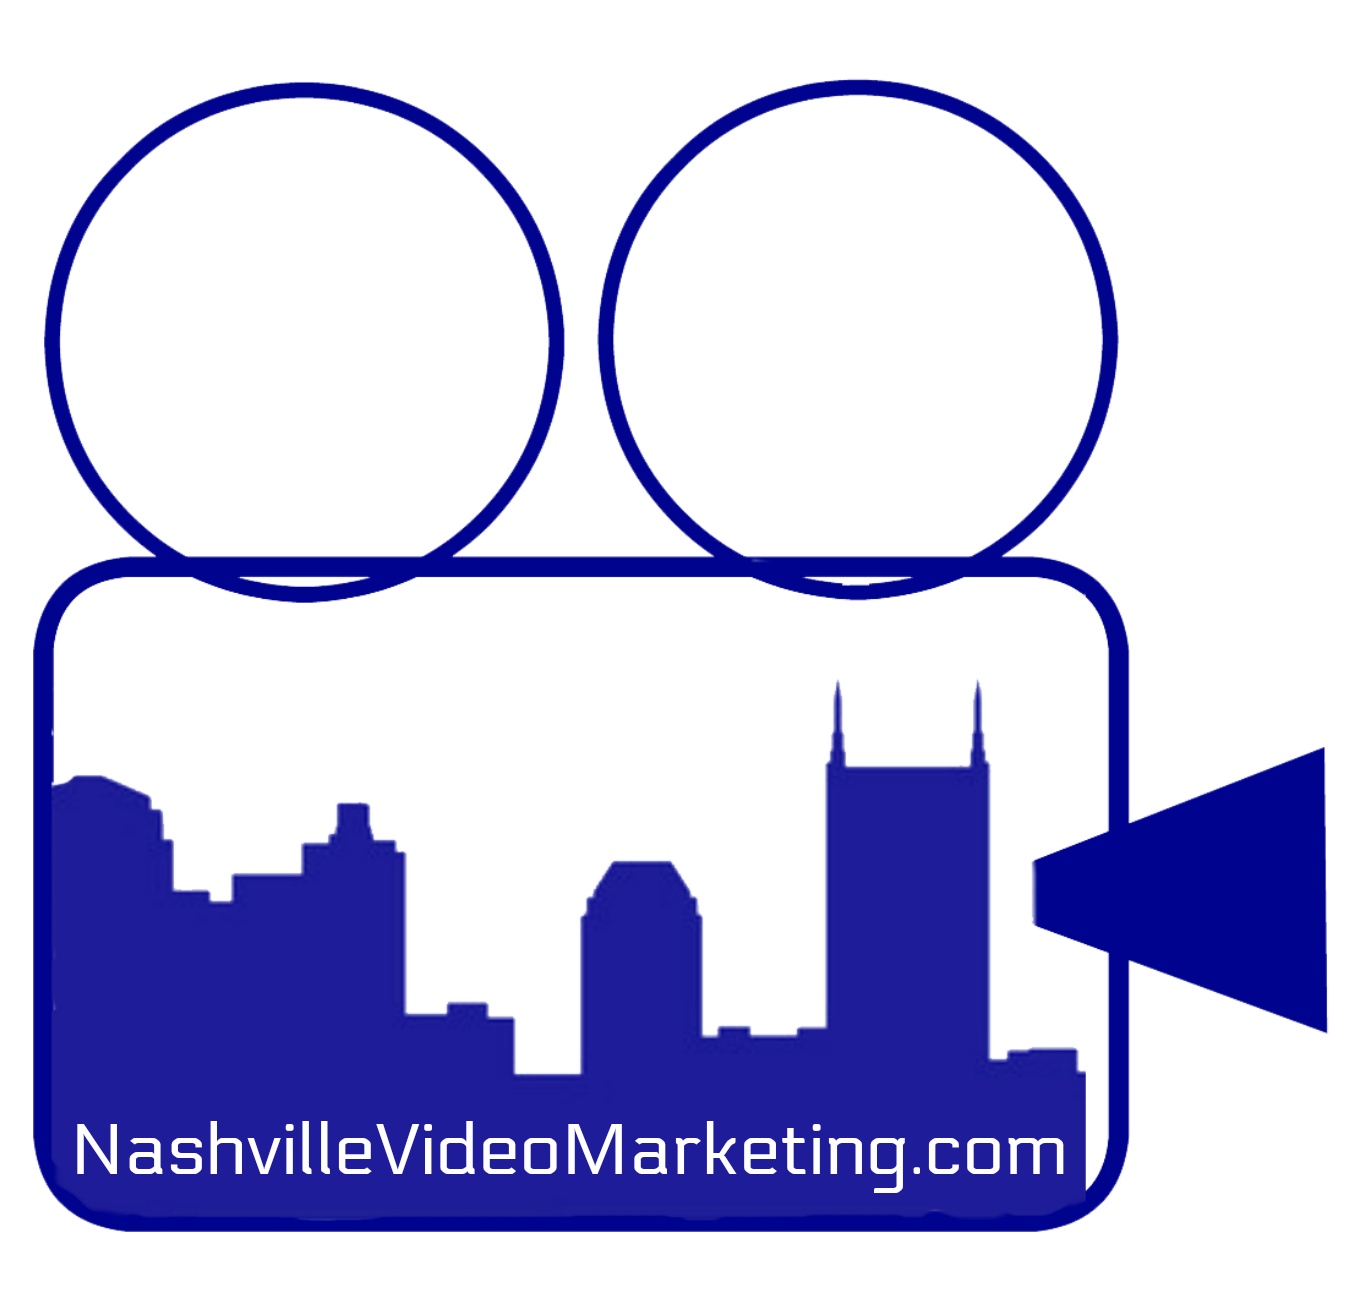 Nashville Video Marketing